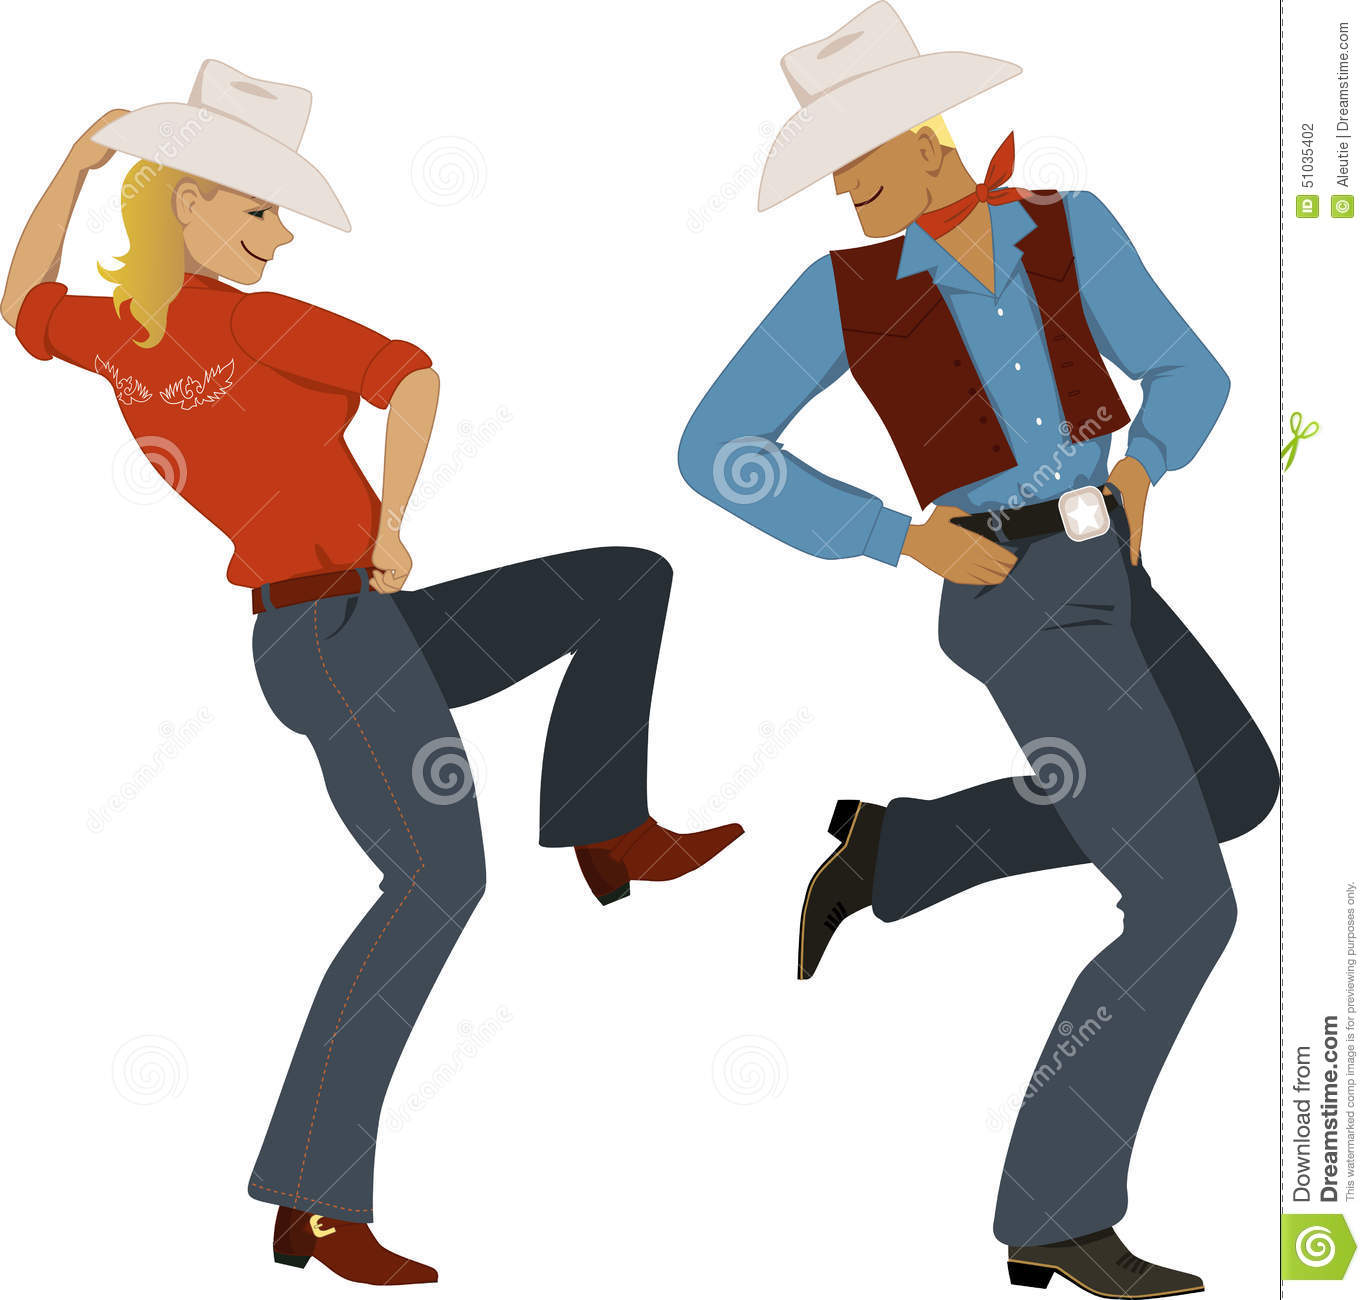 Stock Illustration Cowboy Dancing Young Couple Dressed Traditional Western Style Attire Boots Stetson Hats Vector Illustration No Image51035402 on Western Border Clip Art